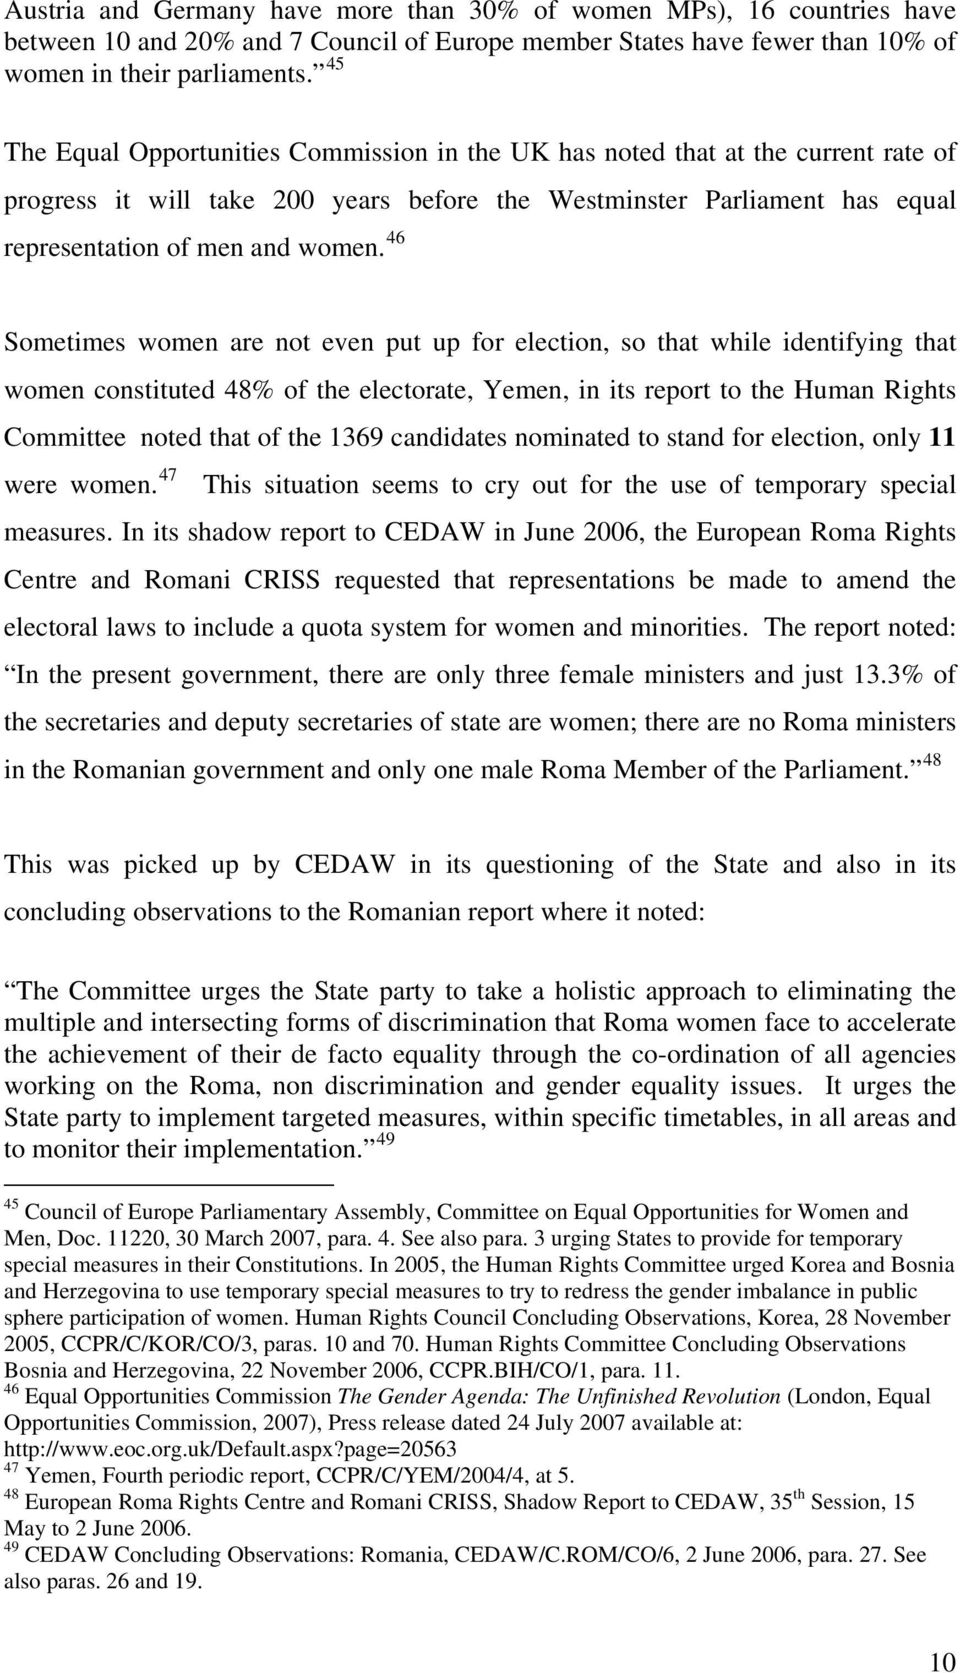 46 Sometimes women are not even put up for election, so that while identifying that women constituted 48% of the electorate, Yemen, in its report to the Human Rights Committee noted that of the 1369